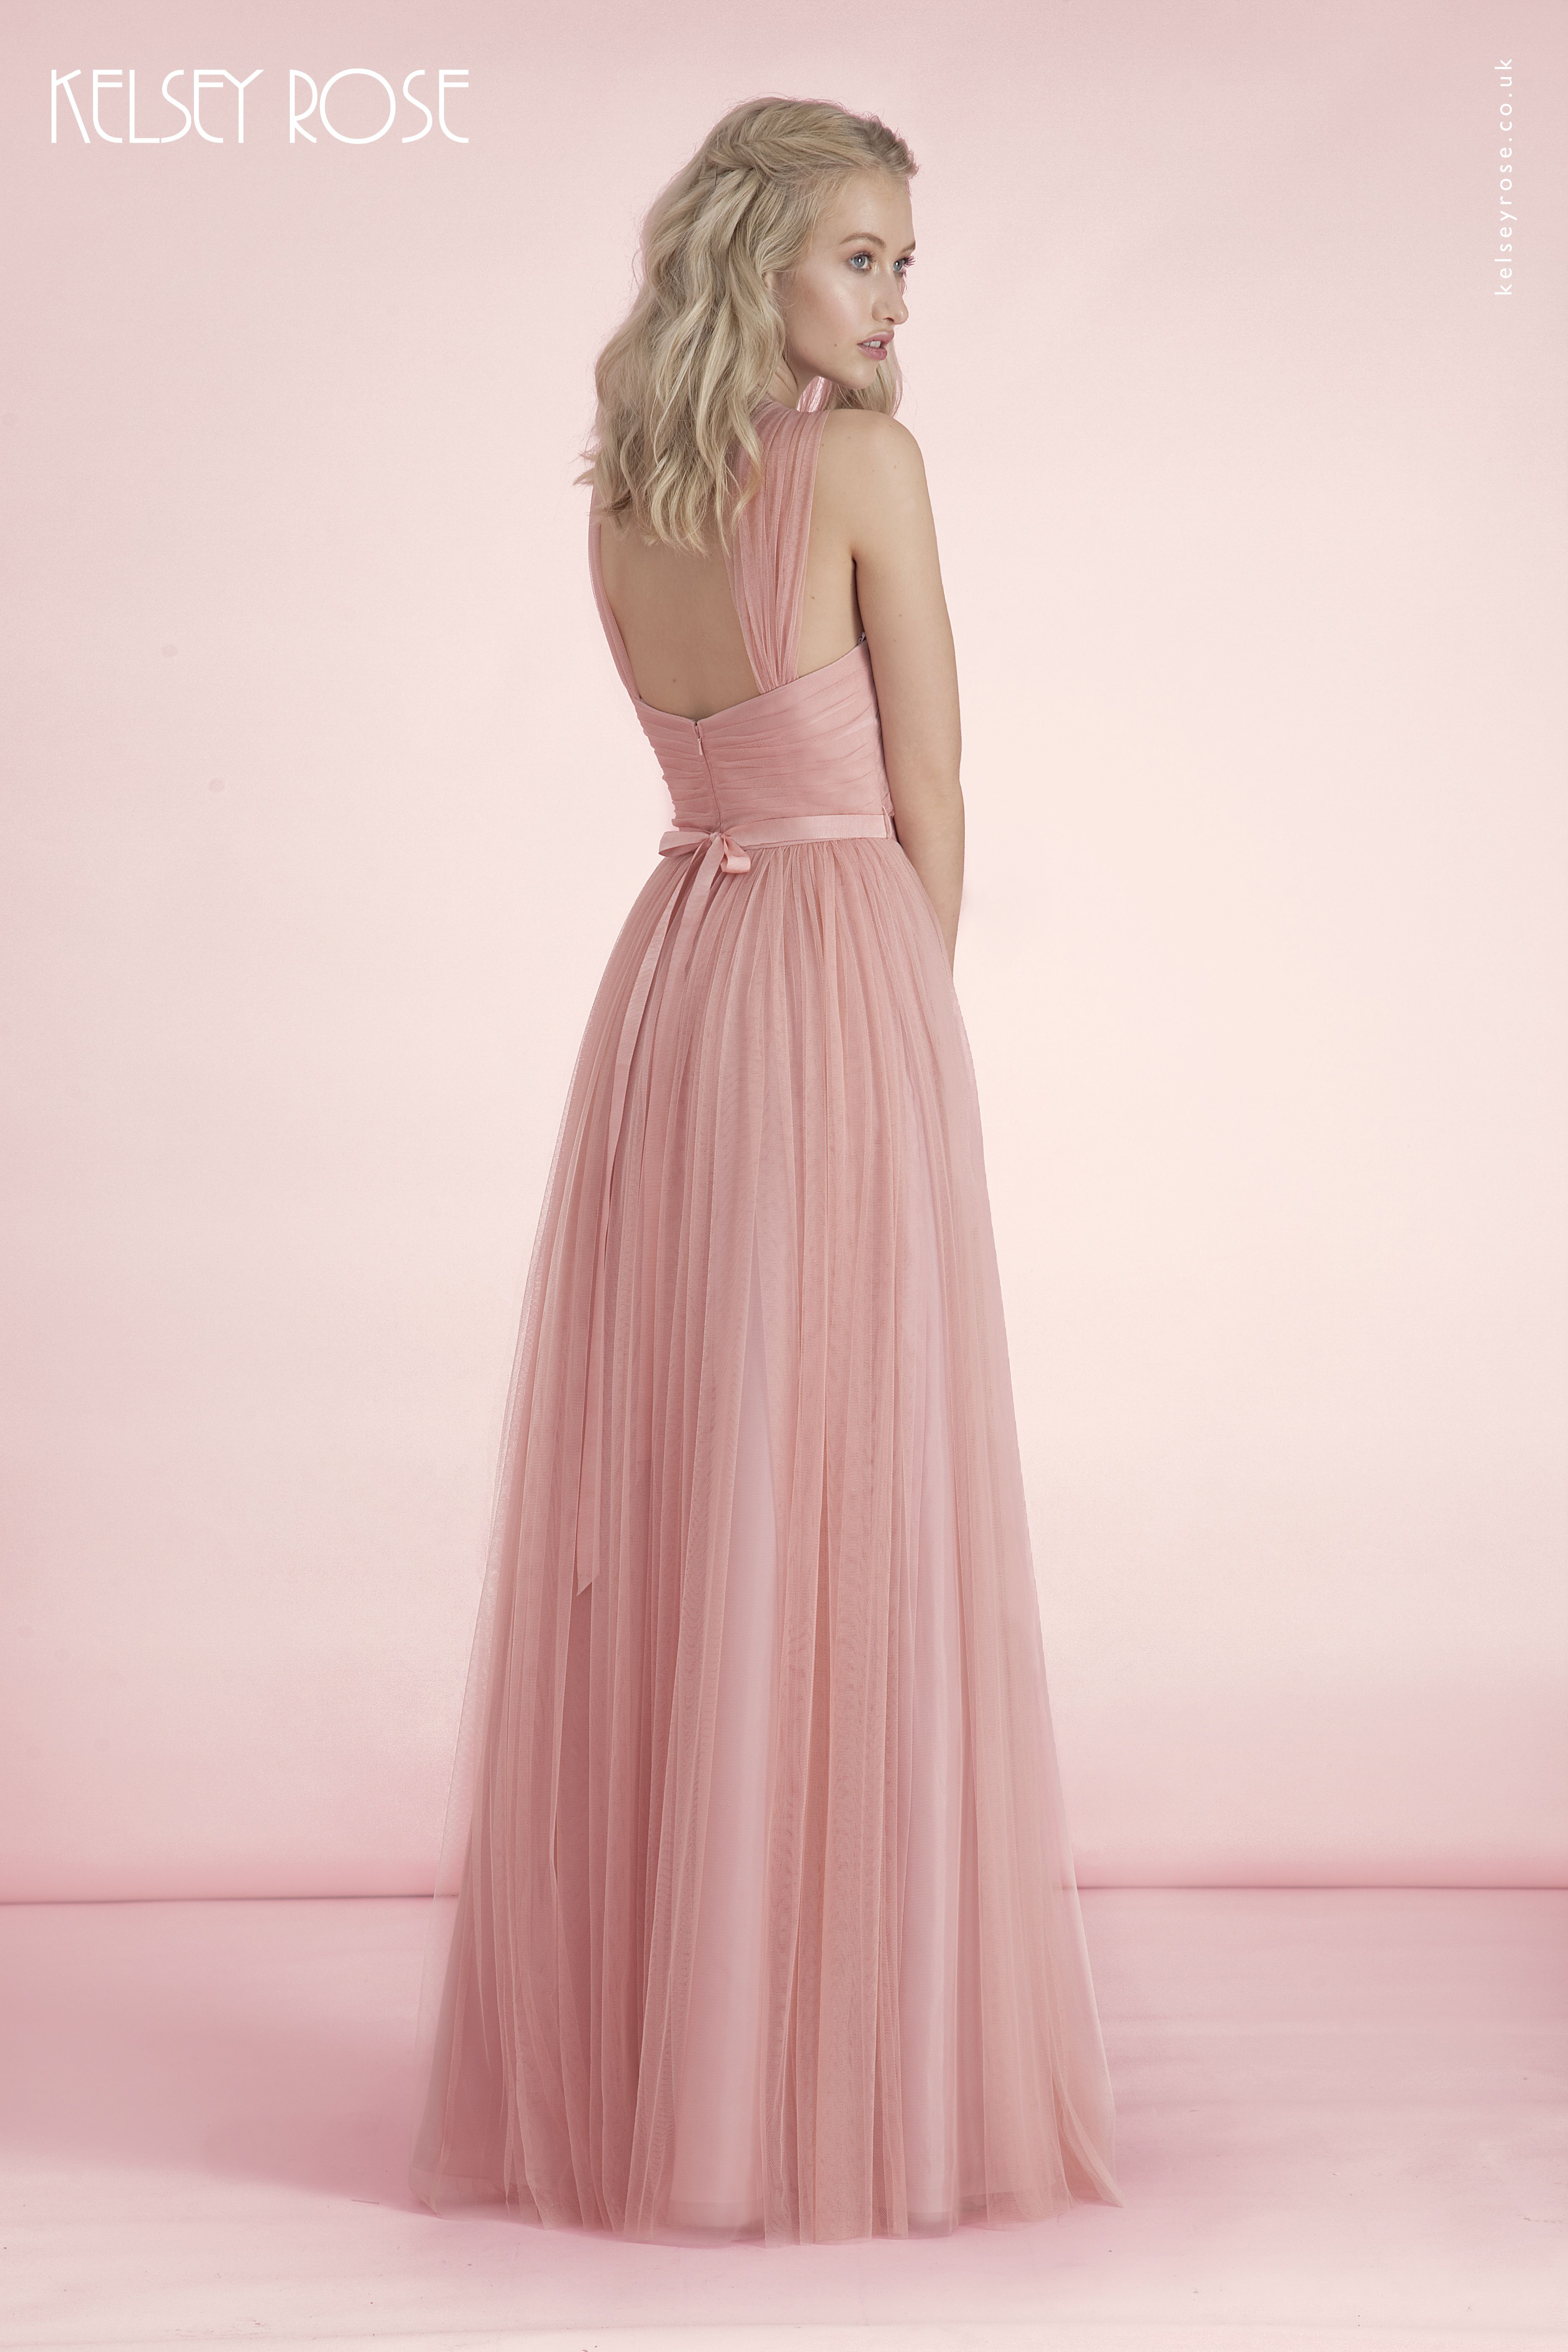 Kelsey Rose Bridesmaid Style 50096 | GOING TO THE CHAPEL OF LOVE ...